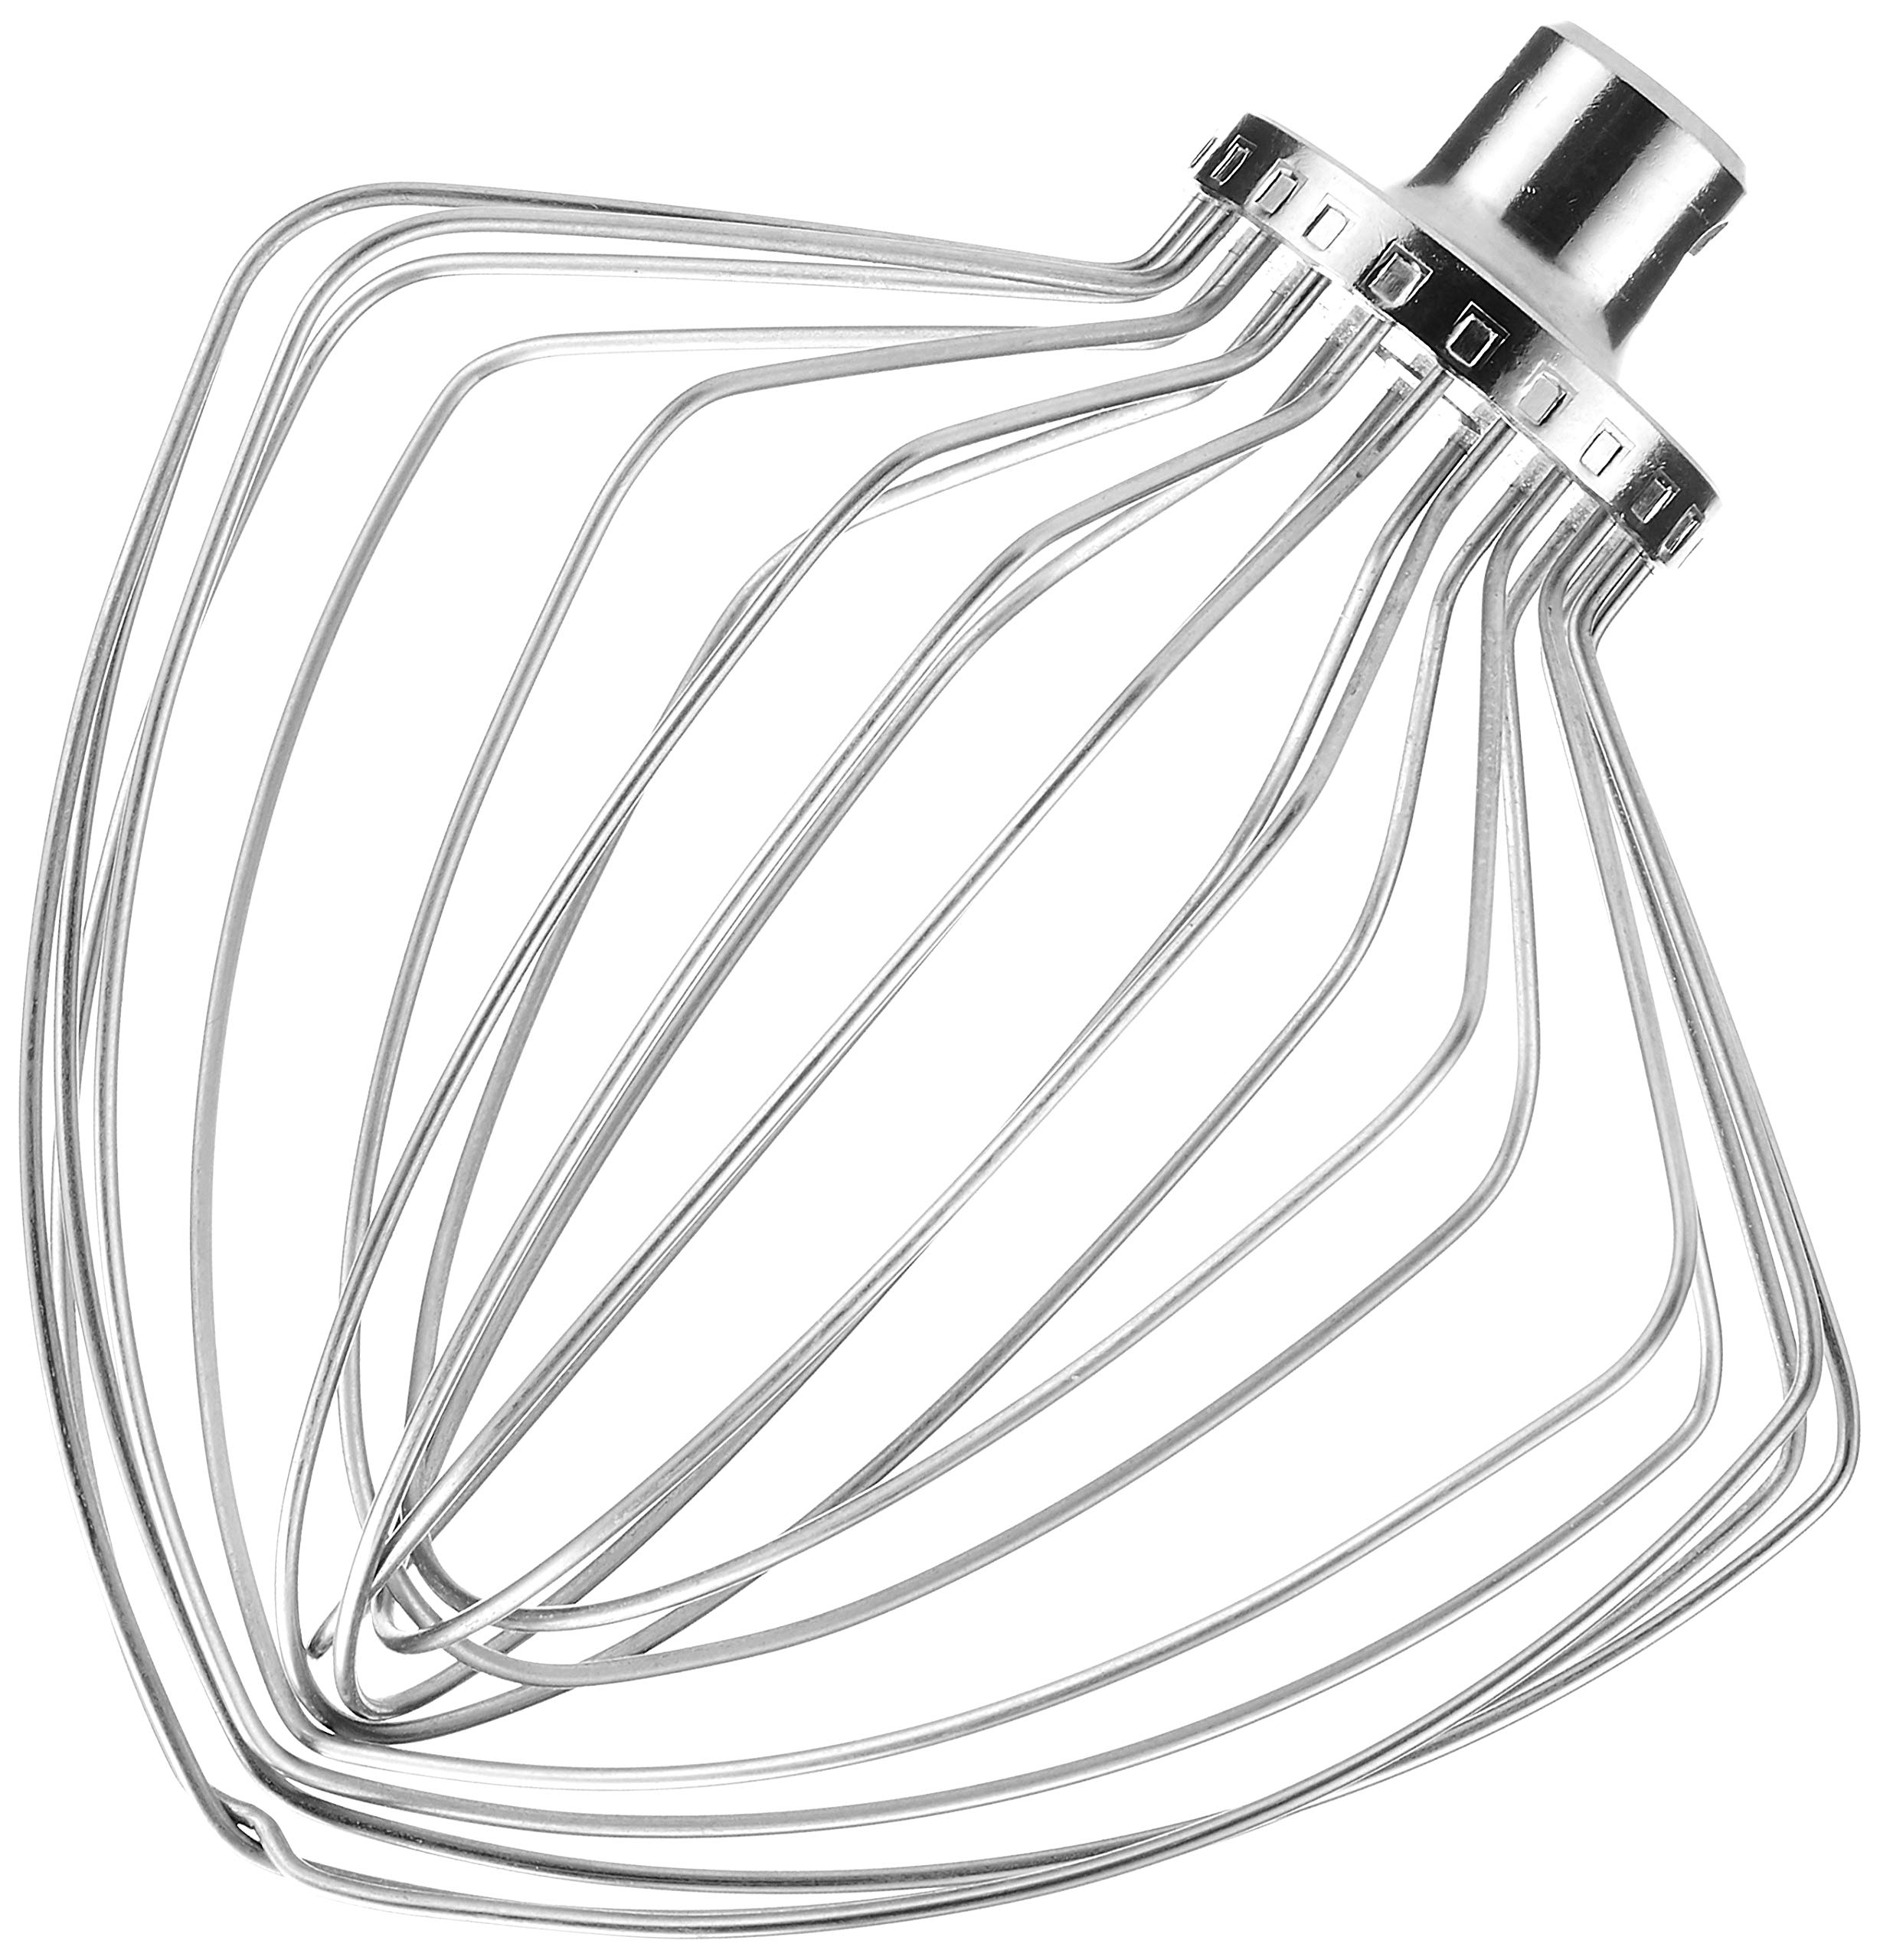 Kitchenaid Commercial Wire Whip, Stainless Steel by KitchenAid